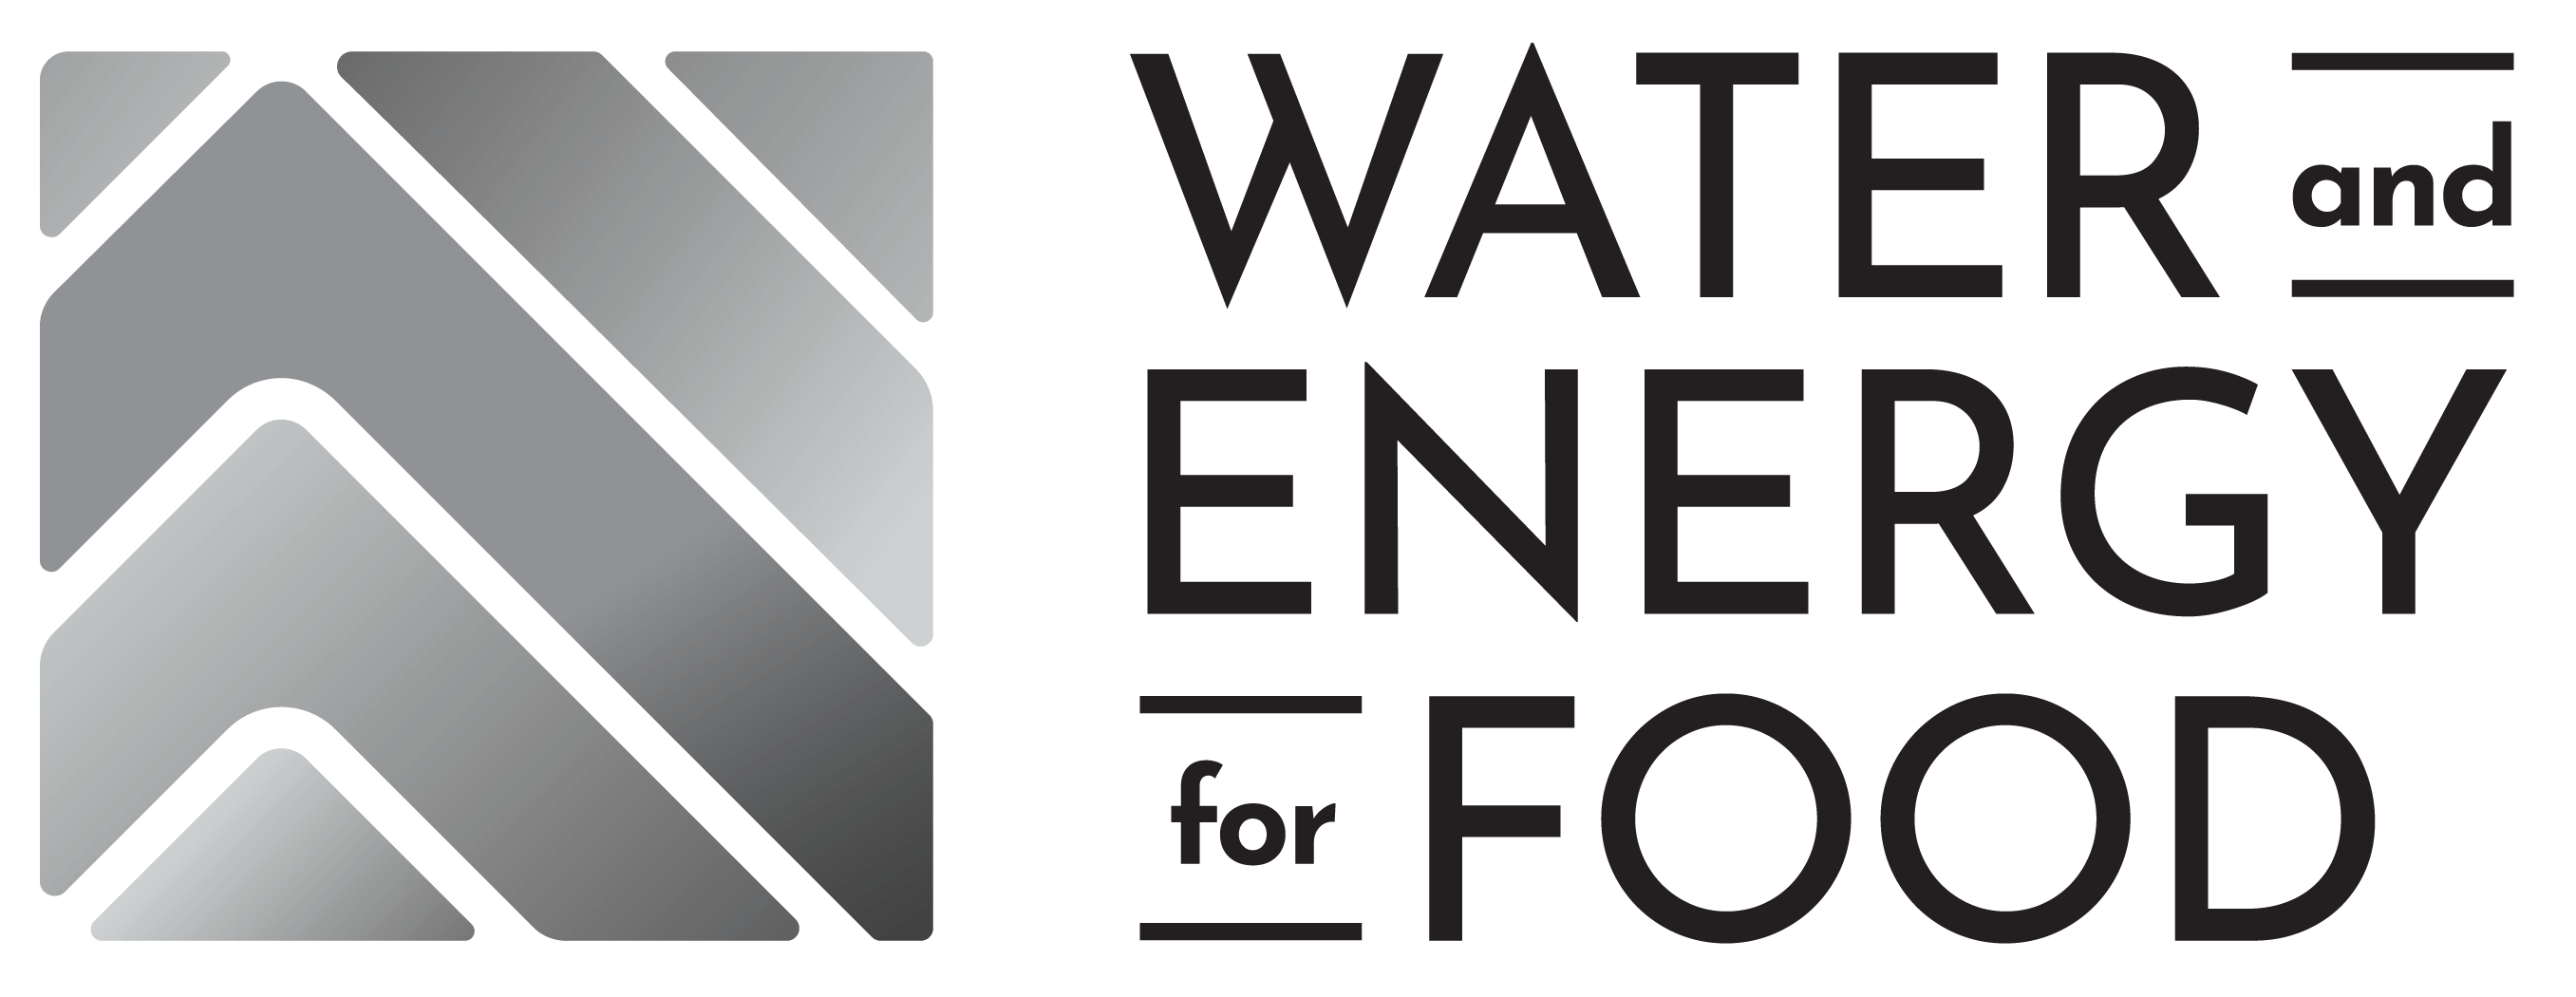 gray scale Water and Energy for Food logo